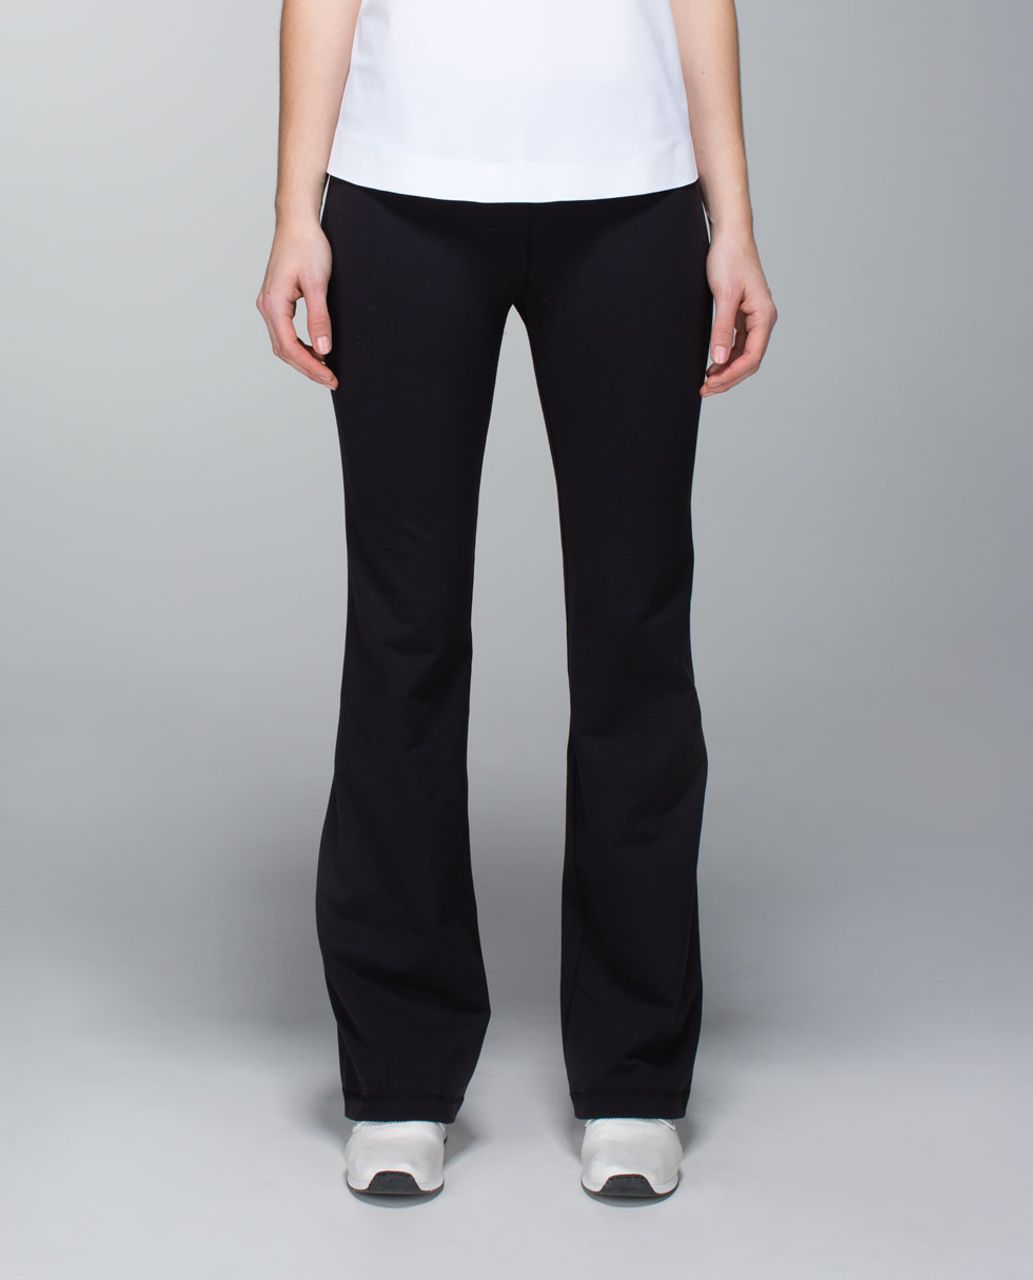 Lululemon Groove Pant (Tall) *Full-On Luon - Black